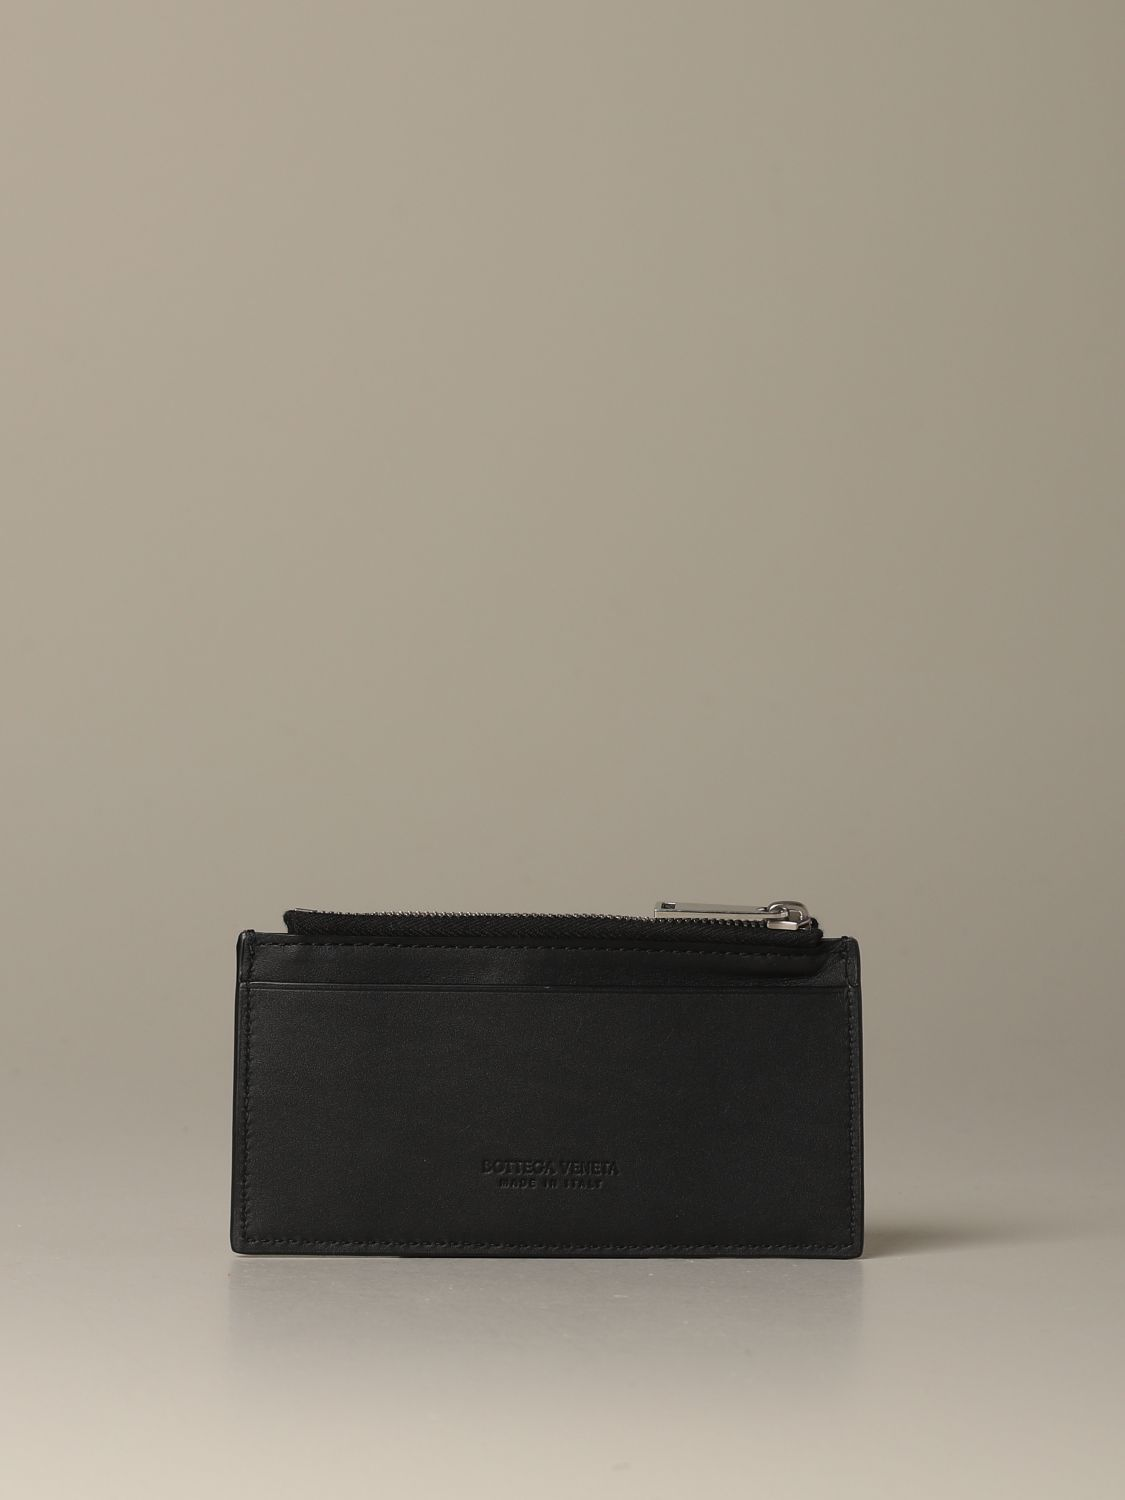 Wallet Bottega Veneta: Bottega Veneta credit card holder in woven leather 1.5 black 2